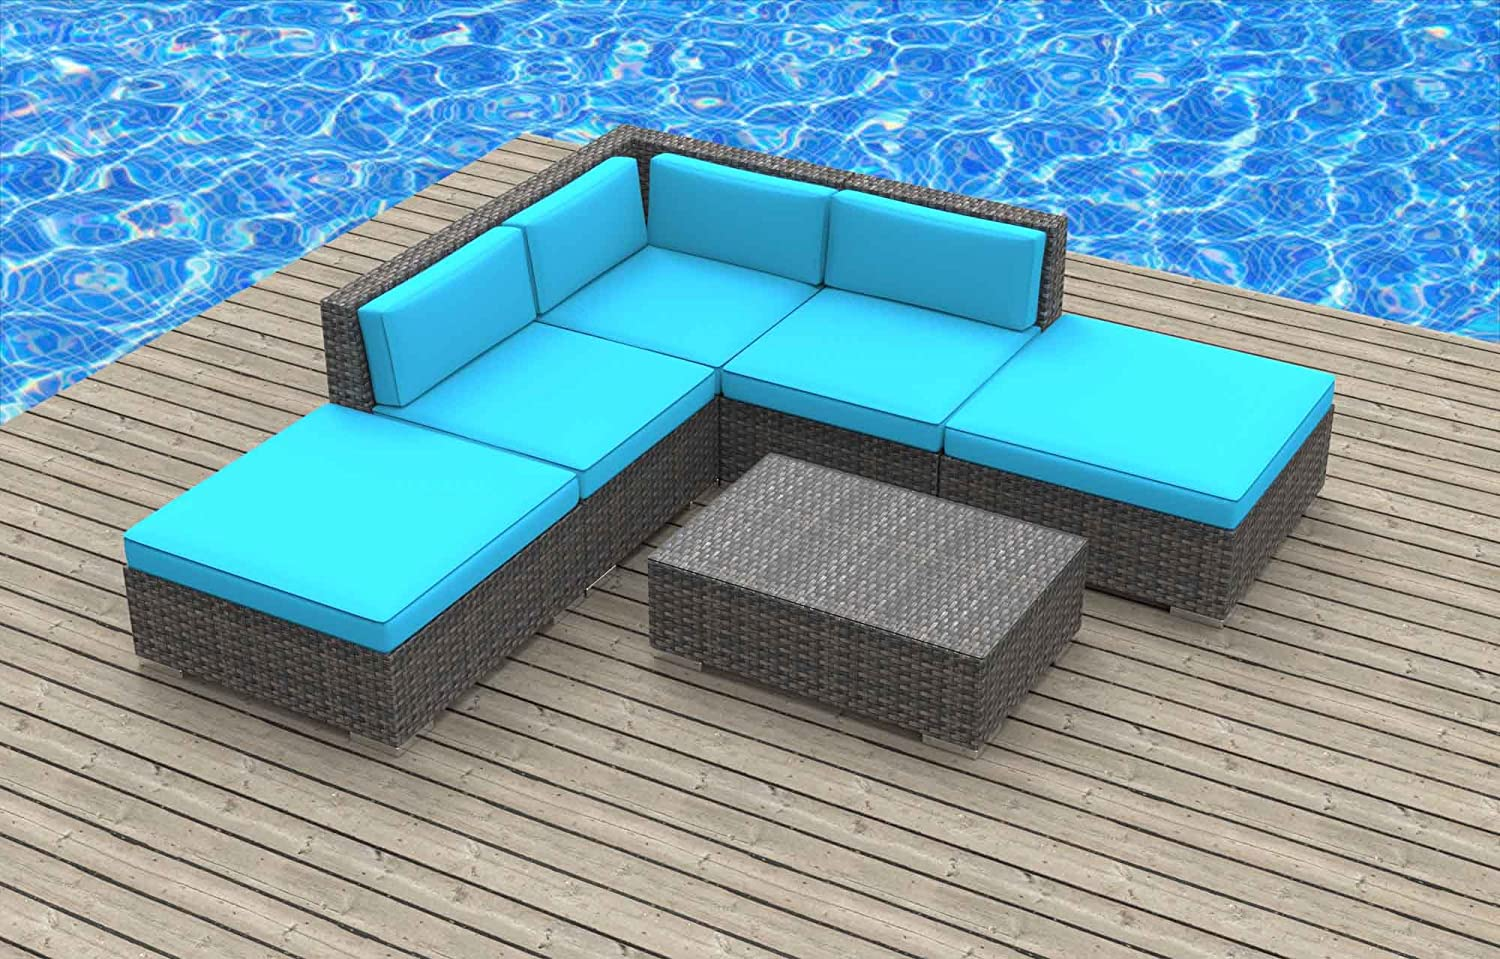 www.urbanfurnishing.net Urban Furnishing - BALI 6pc Modern Outdoor Backyard Wicker Rattan Patio Furniture Sofa Sectional Couch Set - Sea Blue at Sears.com